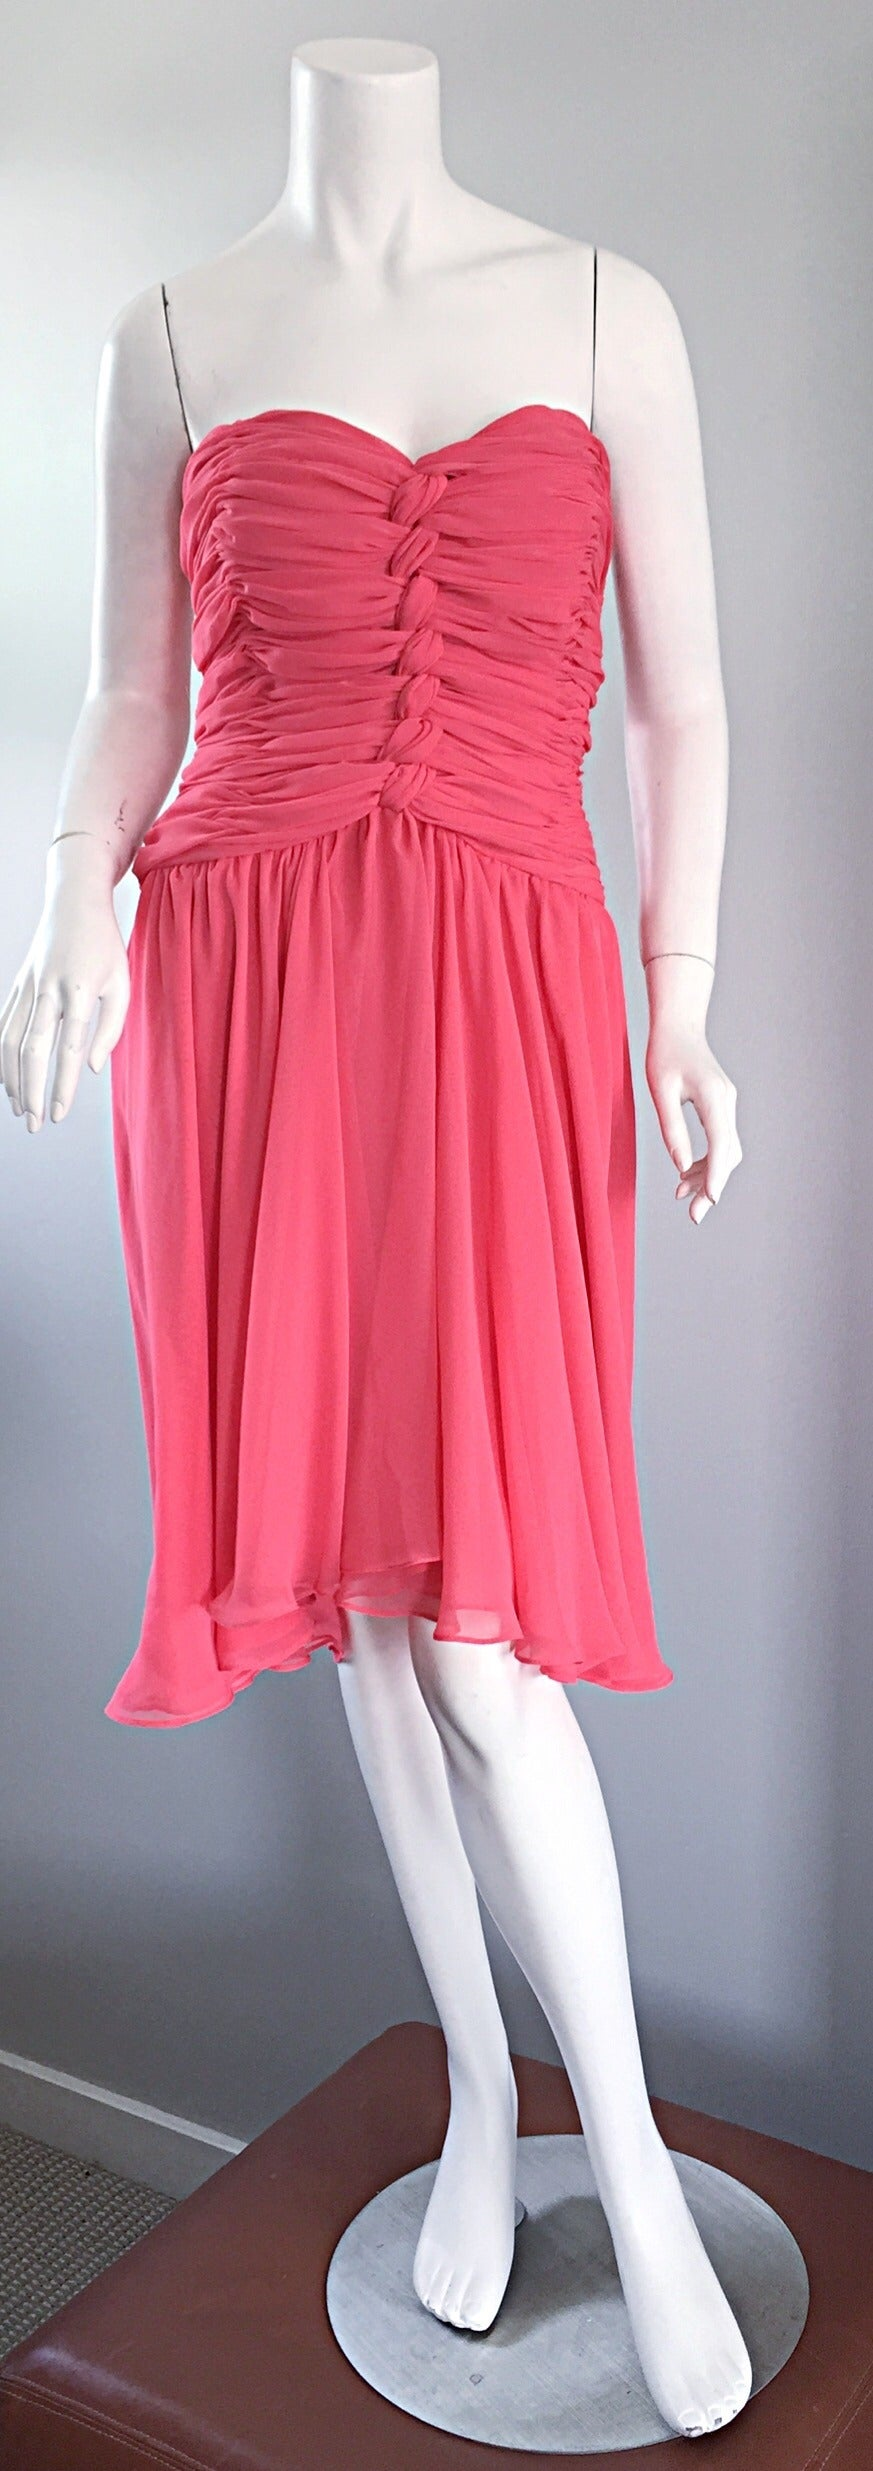 Victor Costa Coral Pink Strapless Flowy Knotted Vintage Cocktail Dress Size 8 10 For Sale 4